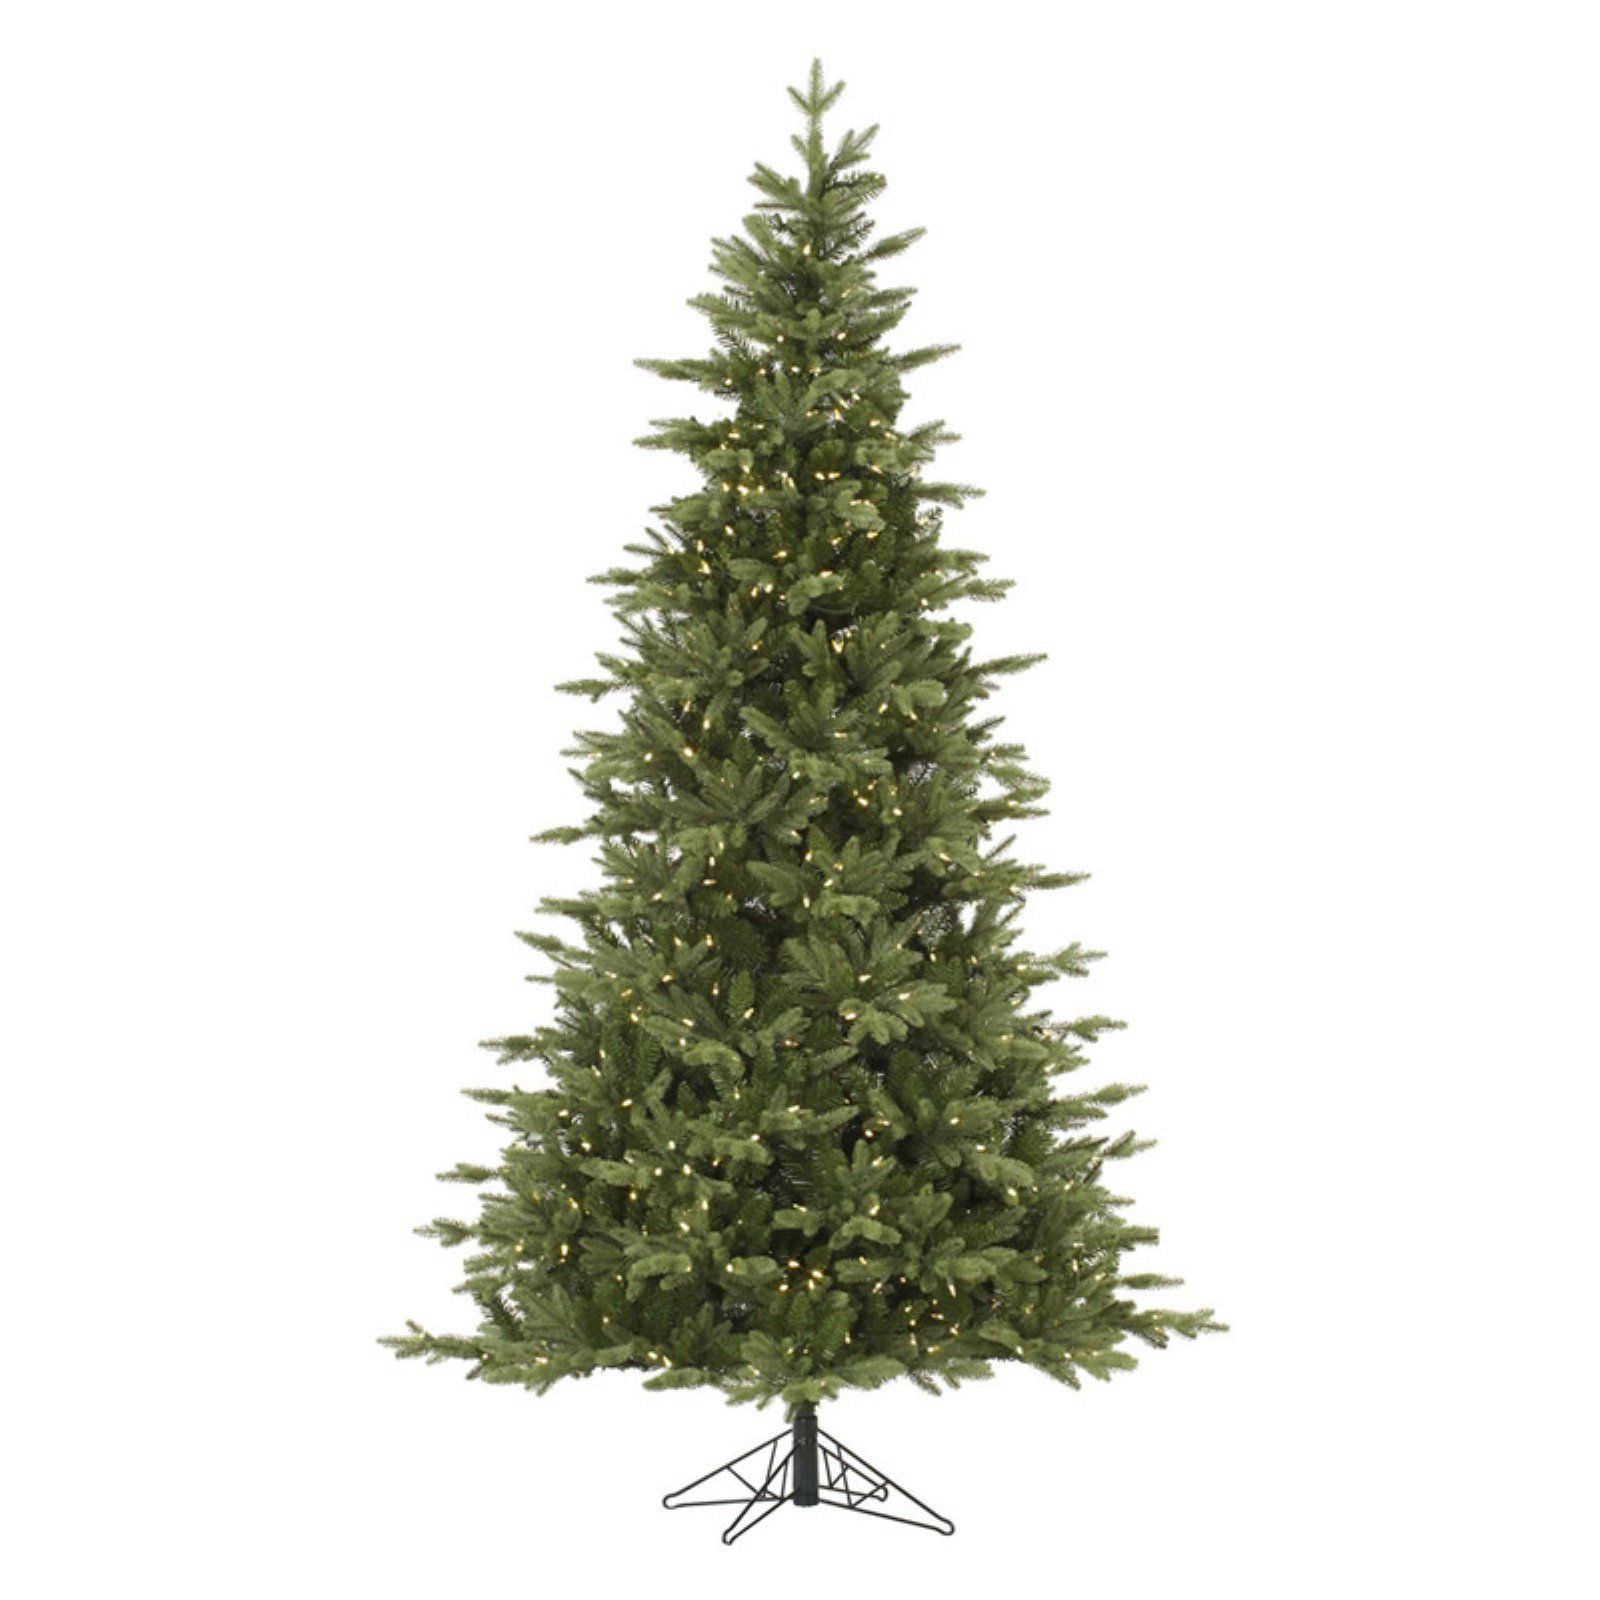 12 Ft Vickerman Fresh Balsam Fir Full Pre Lit Christmas Tree Unlit Christmas Trees Pre Lit Christmas Tree Balsam Fir Christmas Tree